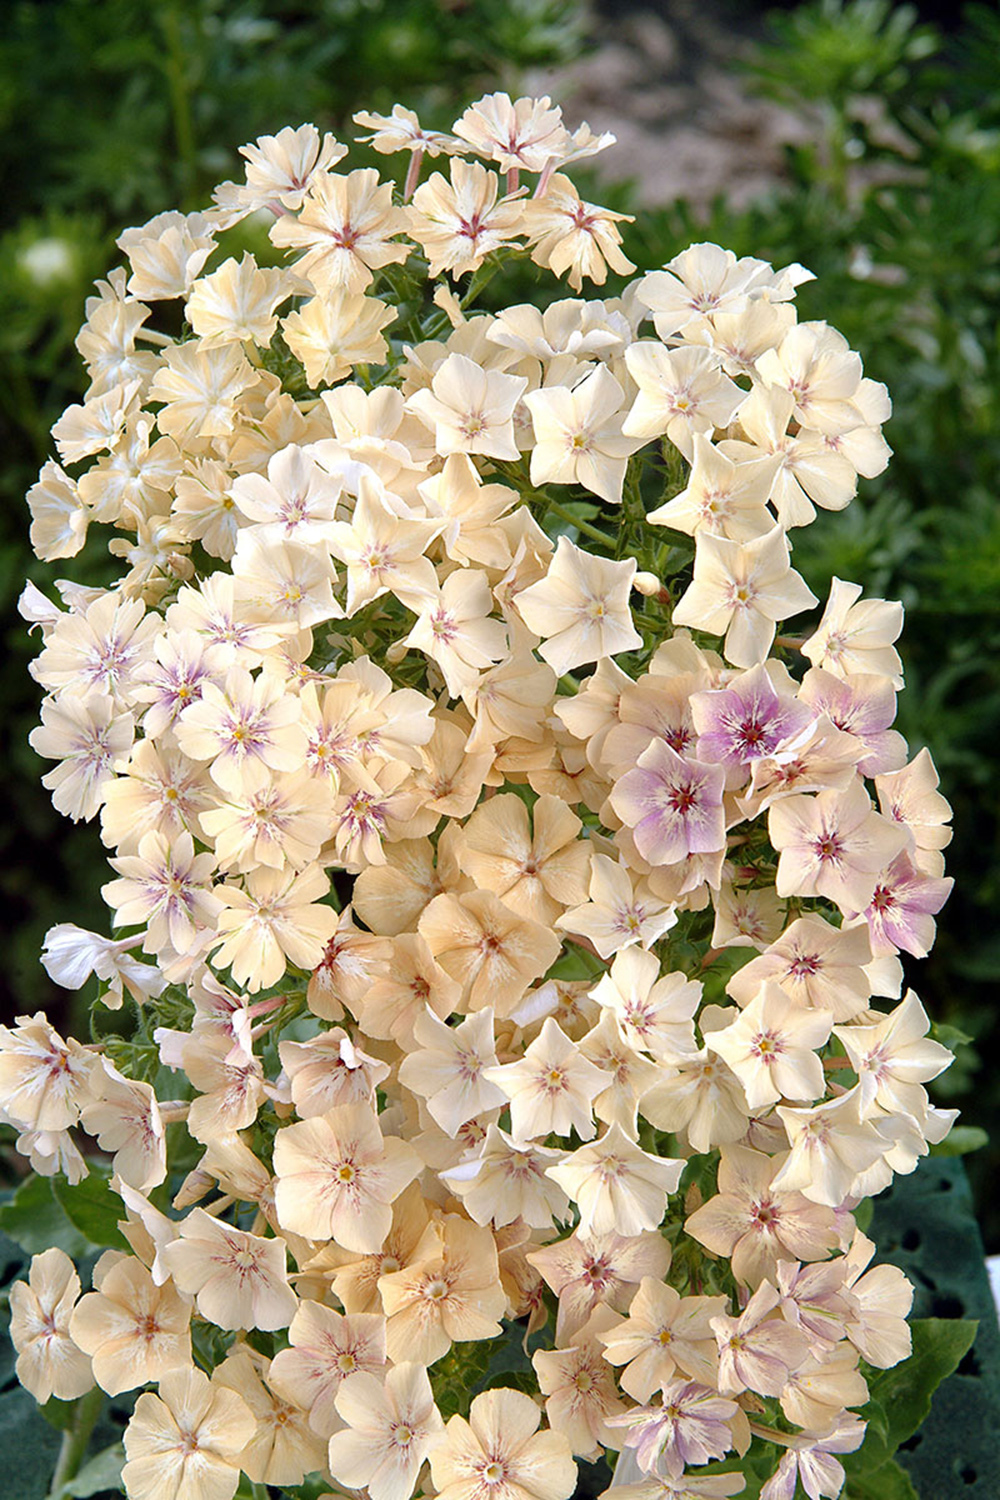 Annual Phlox,  Phlox drummondii , 'Créme Brulee', 'Whipped Cream':  So pleased to see these new colors of phlox! Though phlox is one of those crops that can be frustrating, when it won't germinate or when it starts flowering on teeny tiny little stems, when it's good, it's great. One of those fantastic fluttery blooms that make everything seem more delicate and feminine. It's nice to see a pure white phlox, and then this brown/cafe au lait color. 'Cherry Caramel' and 'Blushing Bride' are still excellent choices as well. Seeds from  Floret  and  Select Seeds.